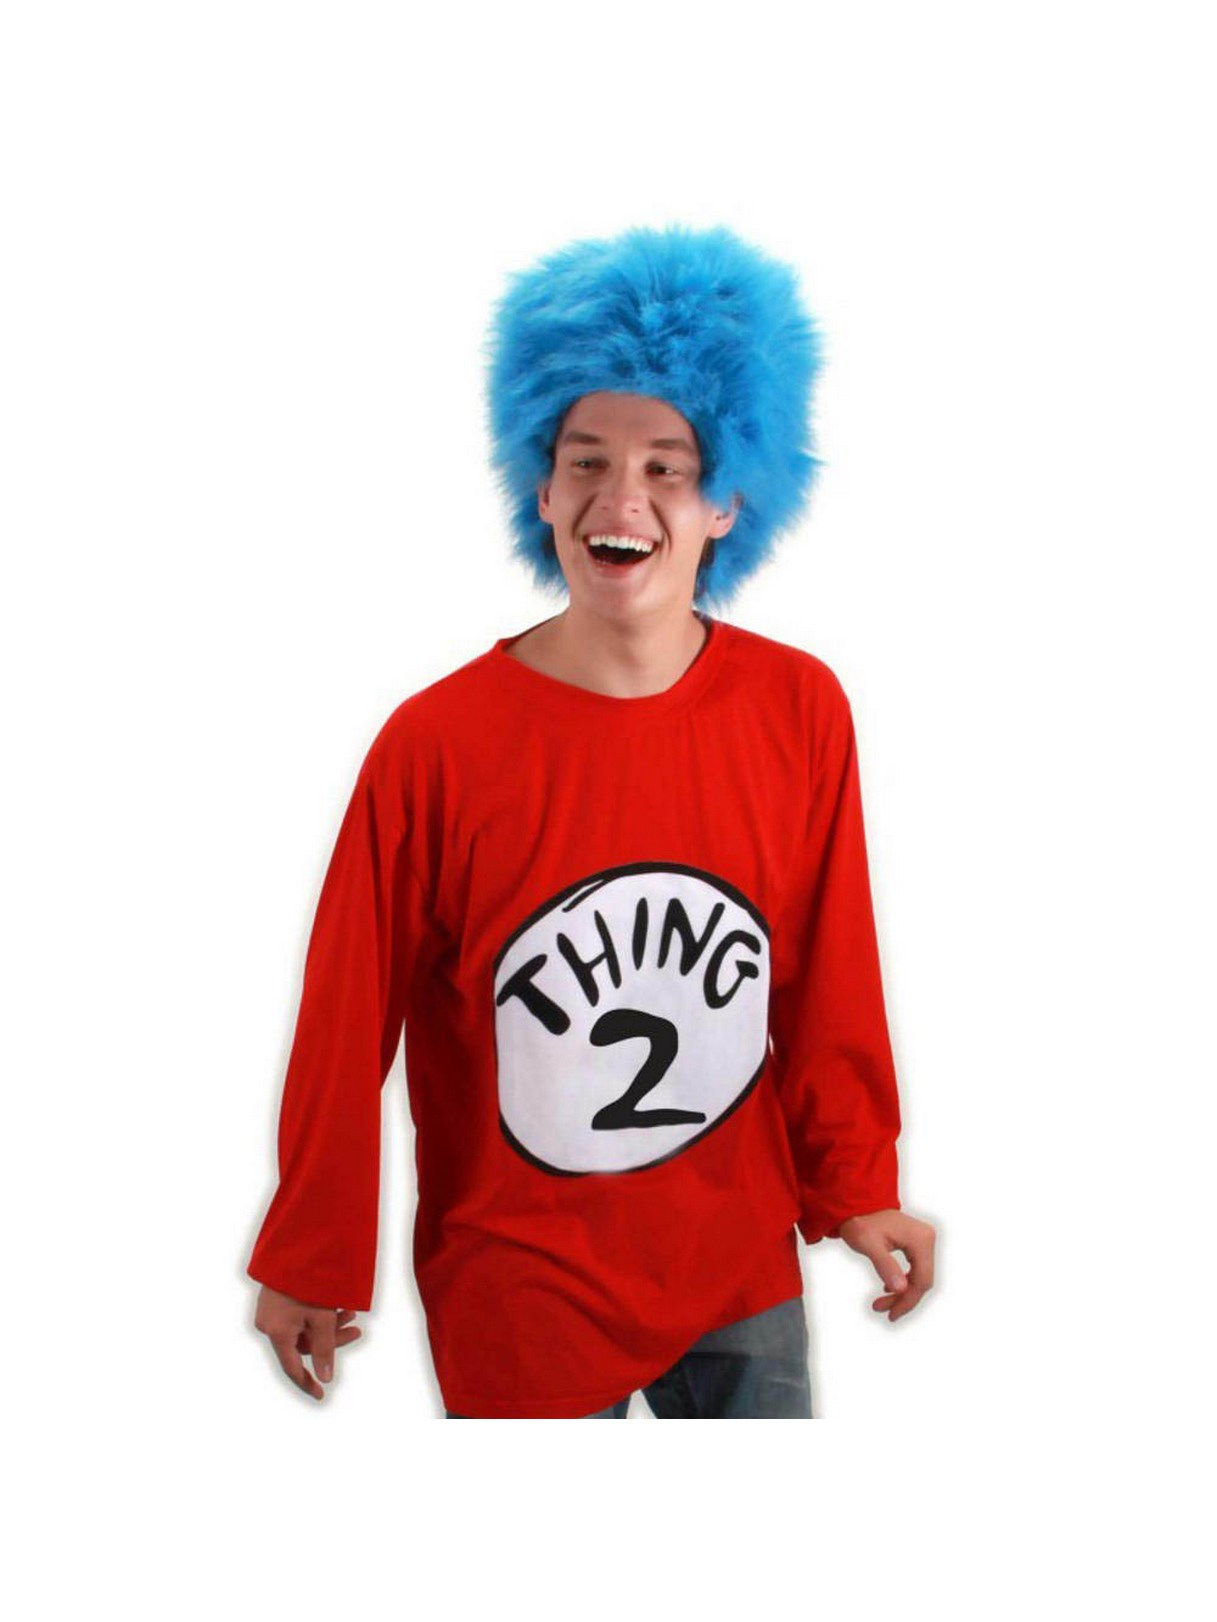 Dr. Seuss Thing 2 Adult Costume Kit Small/Medium